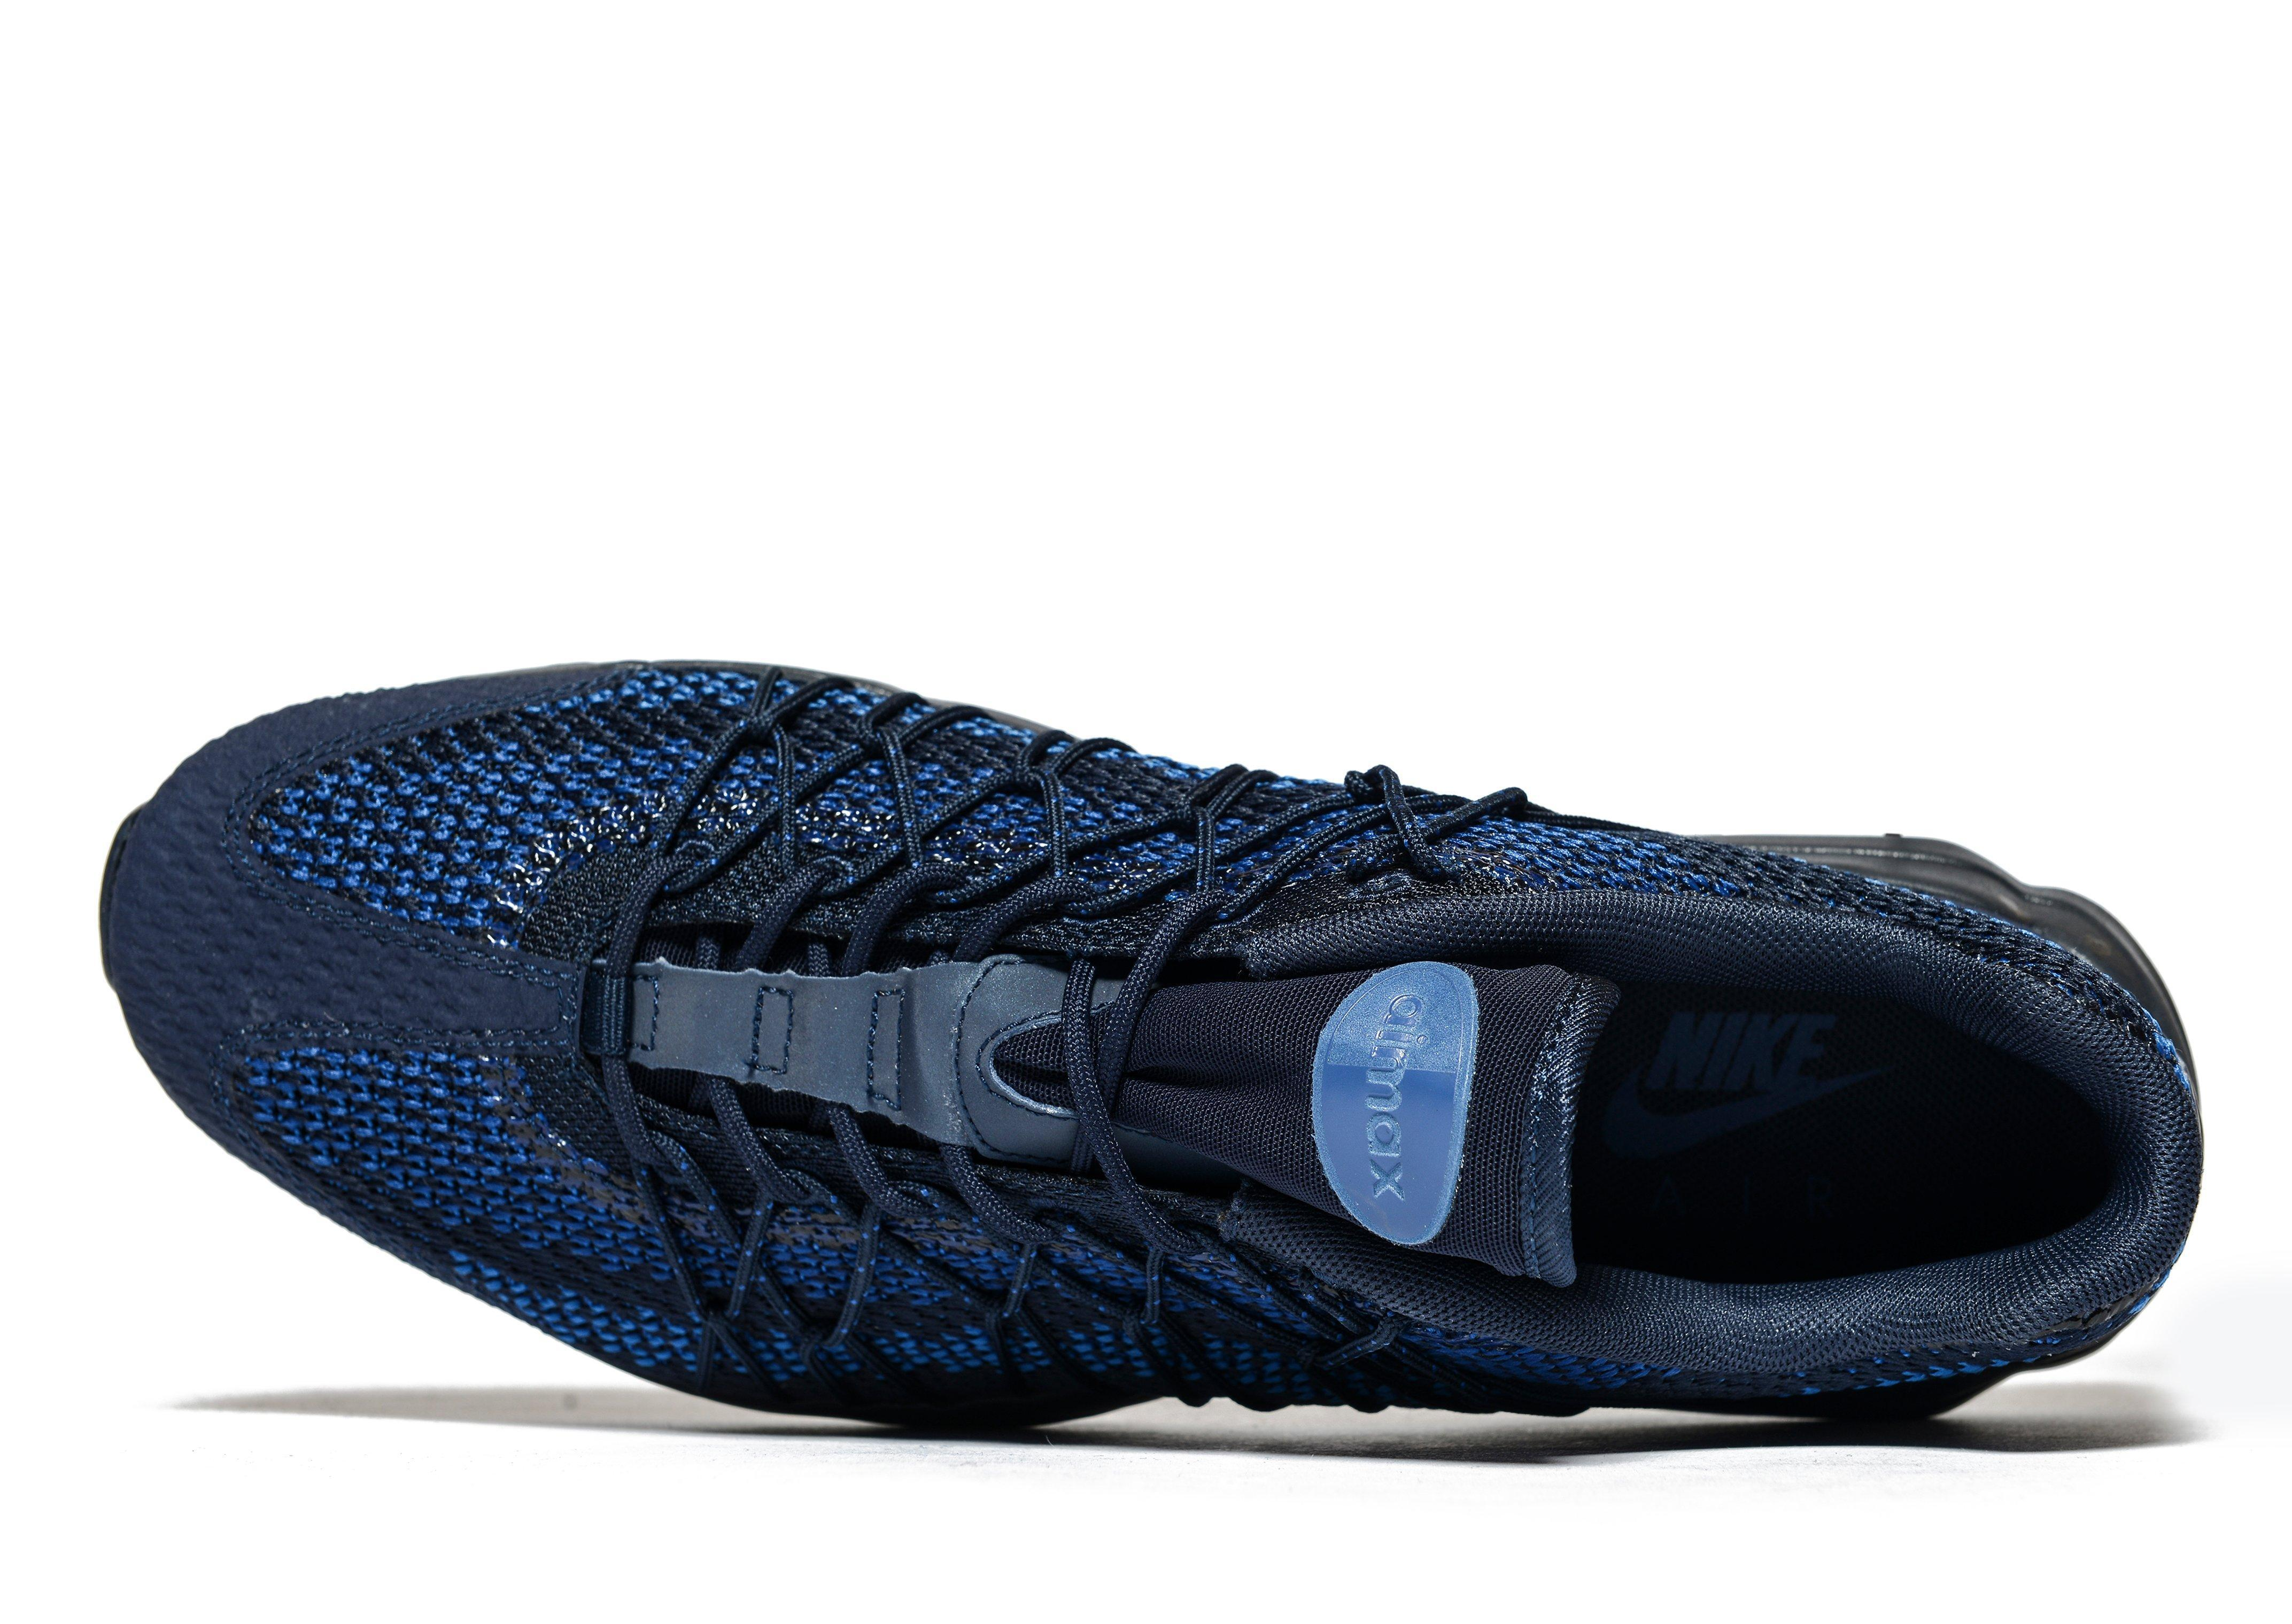 reputable site 0b088 41f4a Nike Air Max 95 Ultra Jacquard in Blue for Men - Lyst